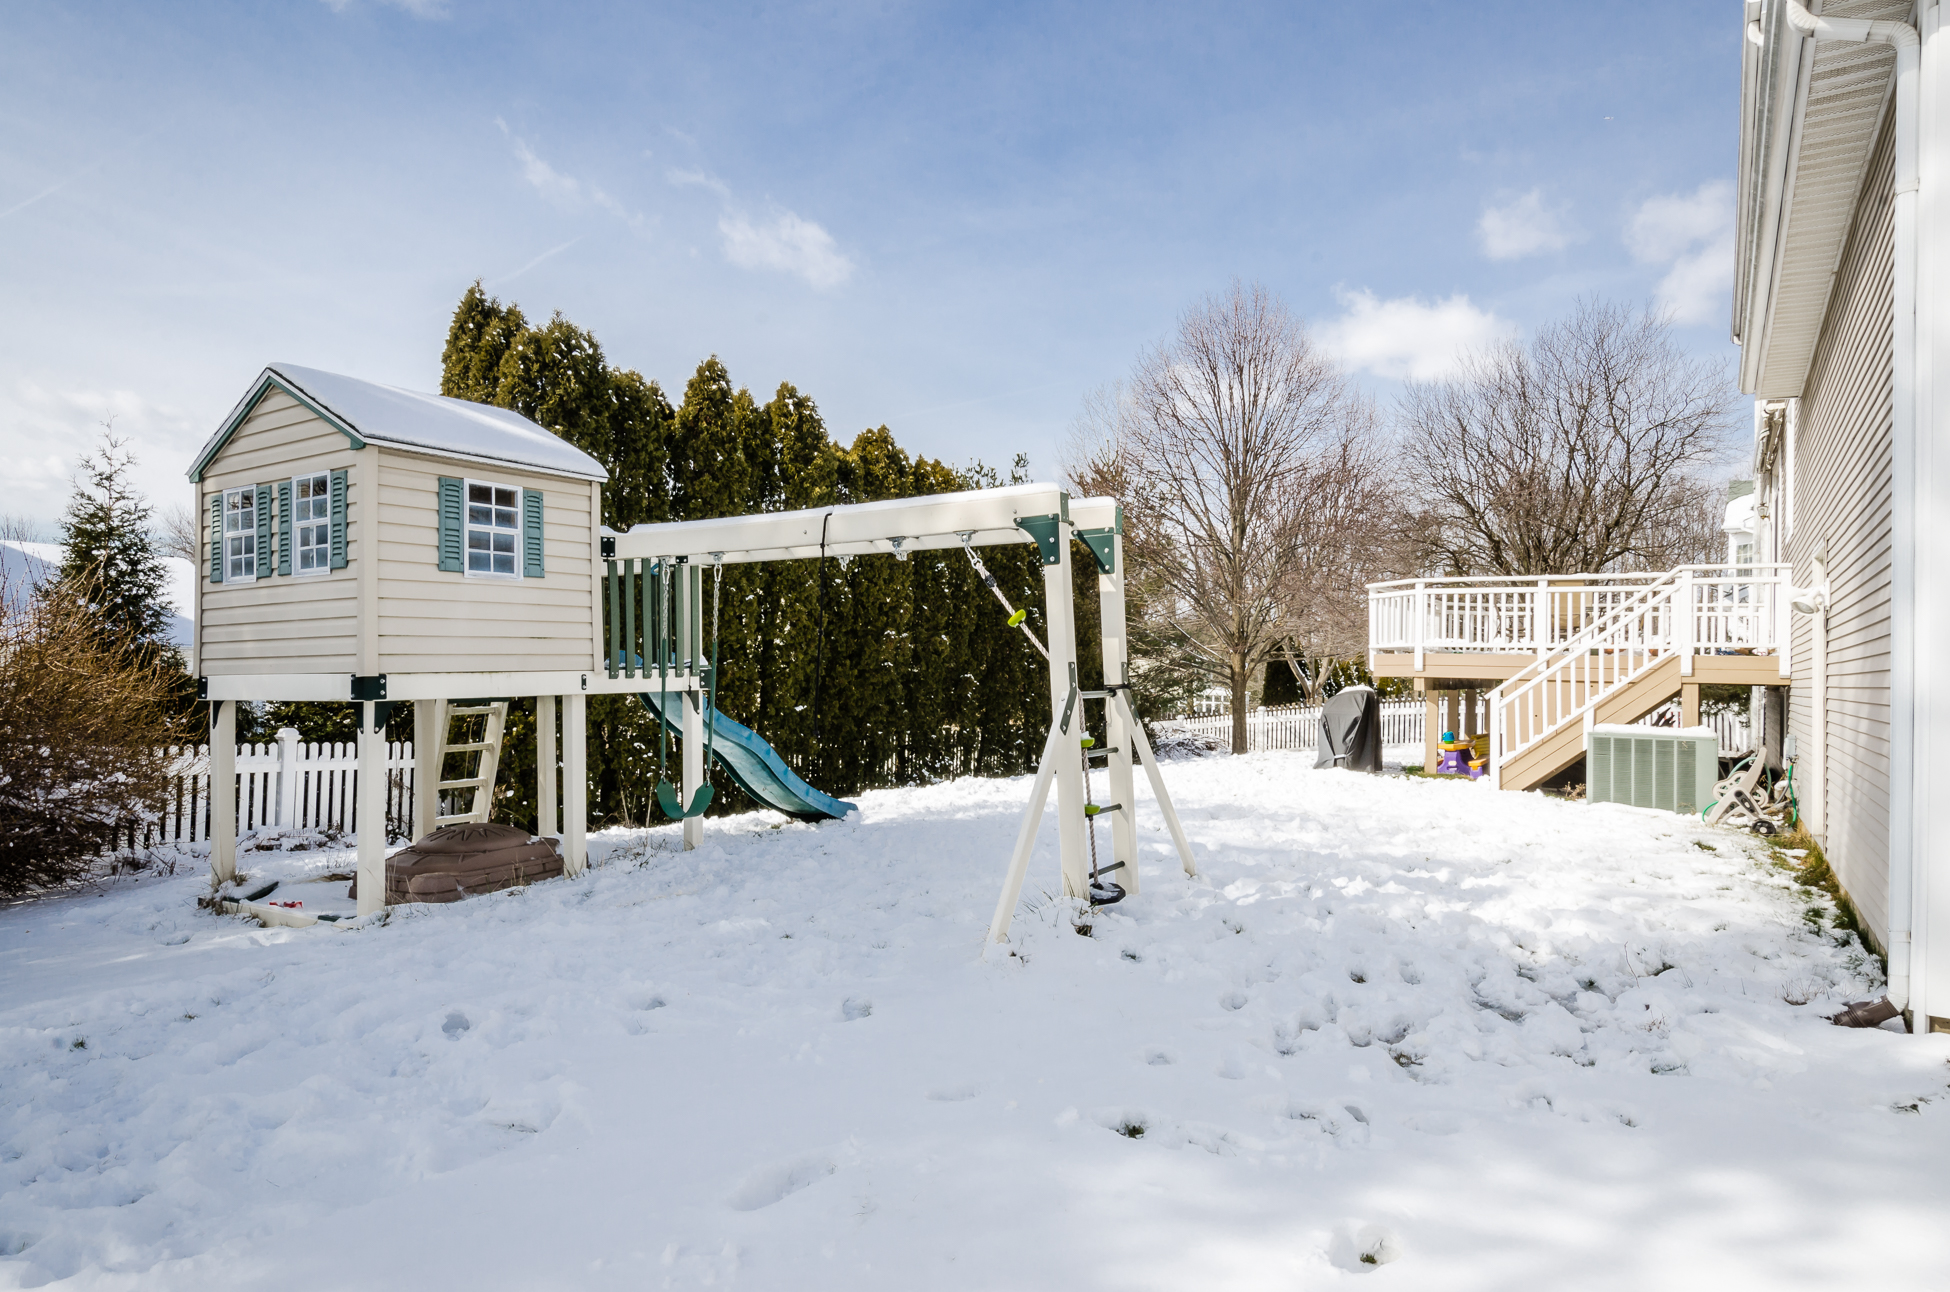 Additional photo for property listing at Right At Home In Brandon Farms - Hopewell Township 132 Brandon Road Pennington, New Jersey 08534 United States